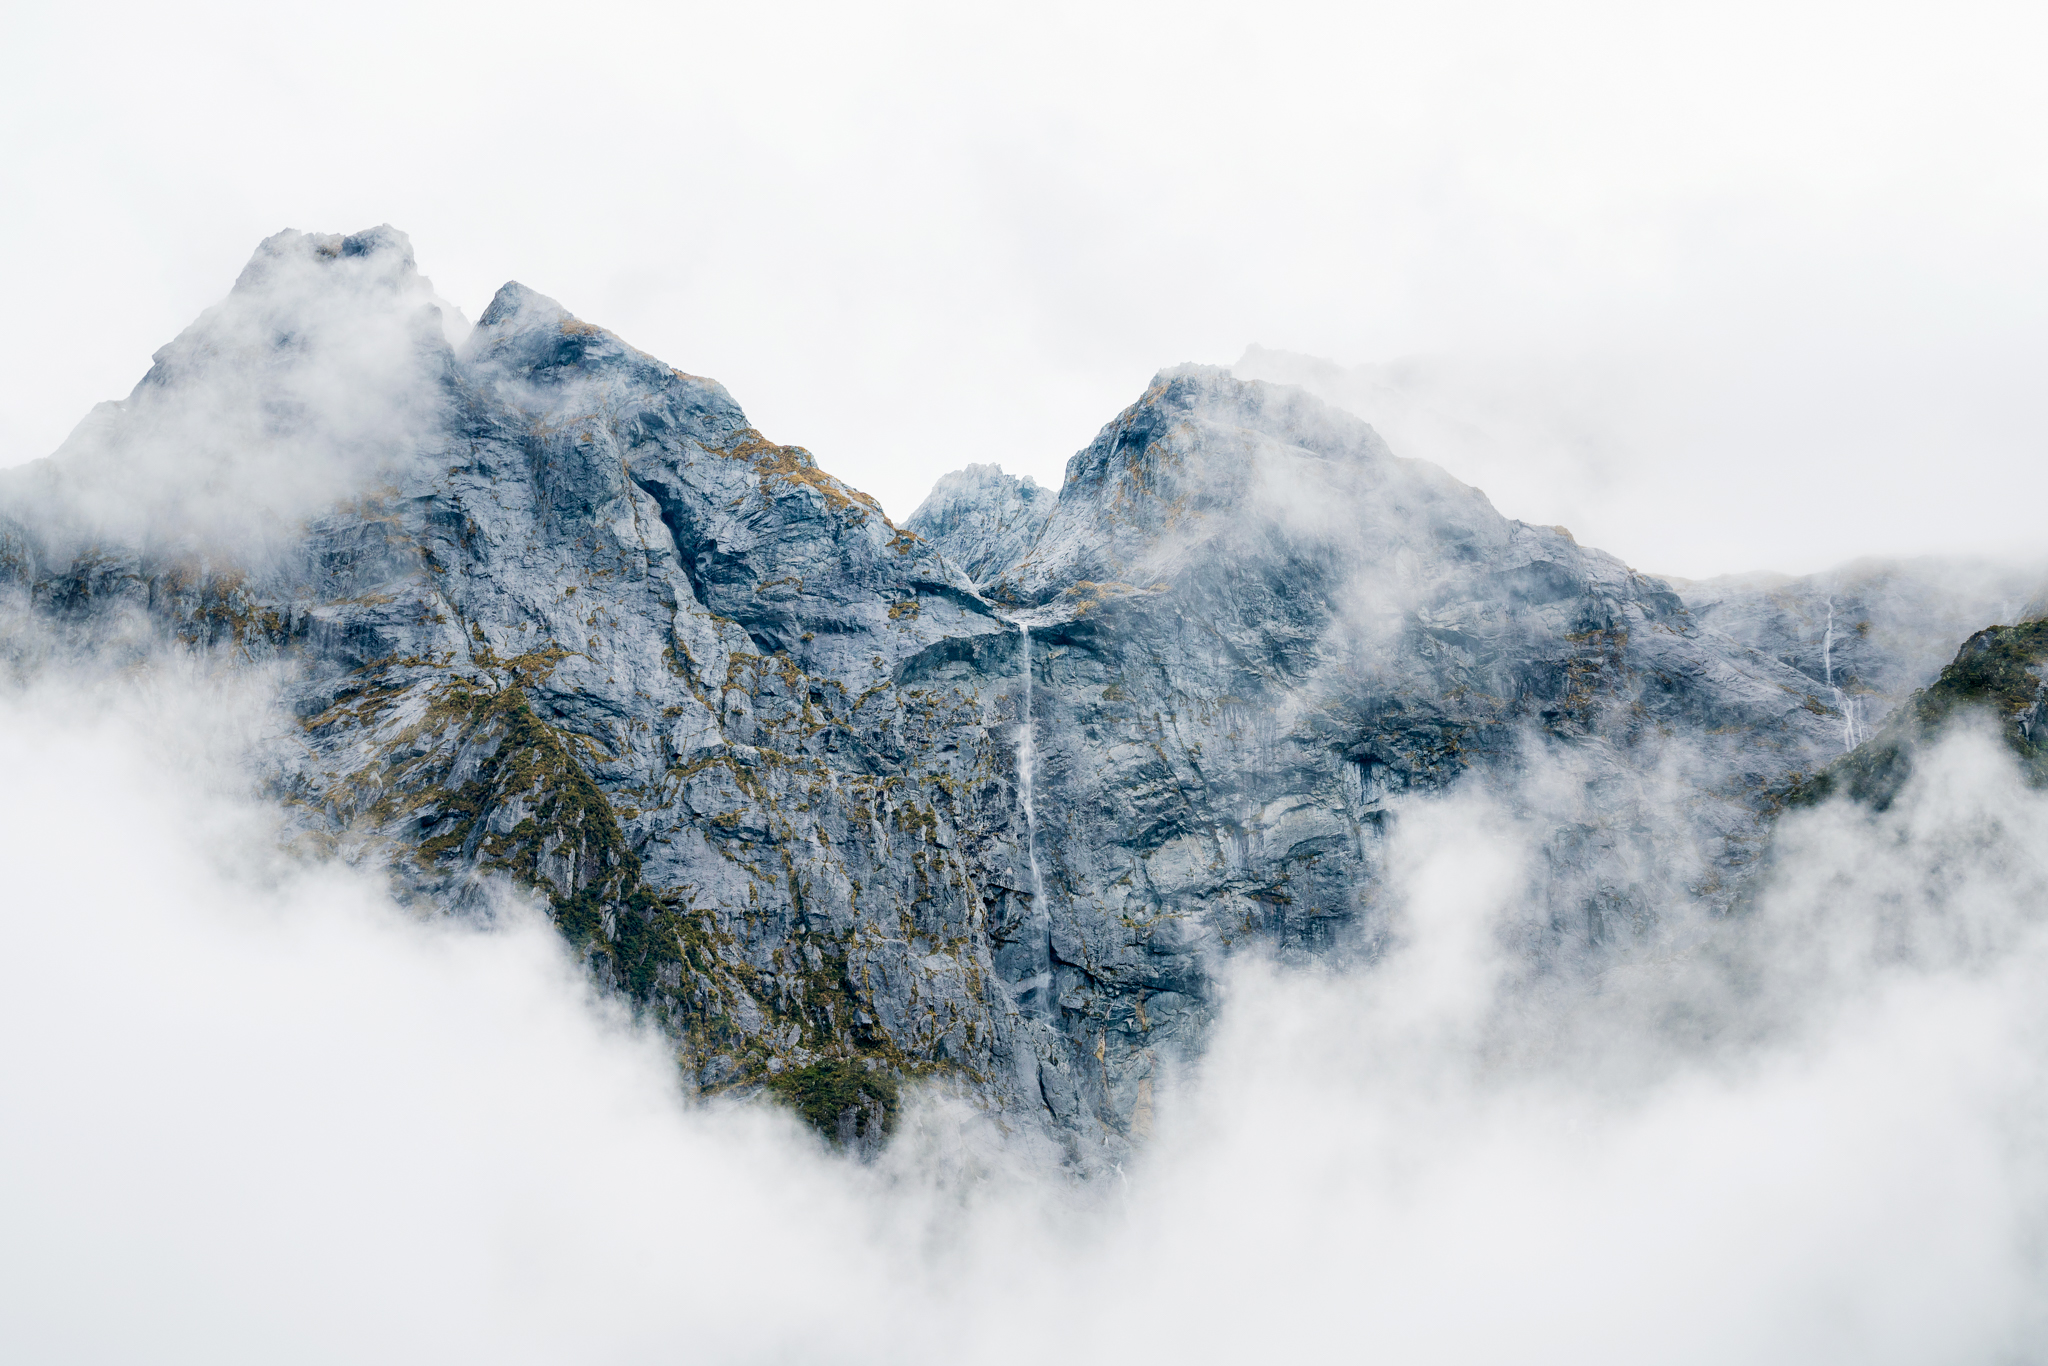 An opportune break in the fog reveals a lone waterfall tumbling down a steep rock face in Milford Sound. (Talman Madsen)